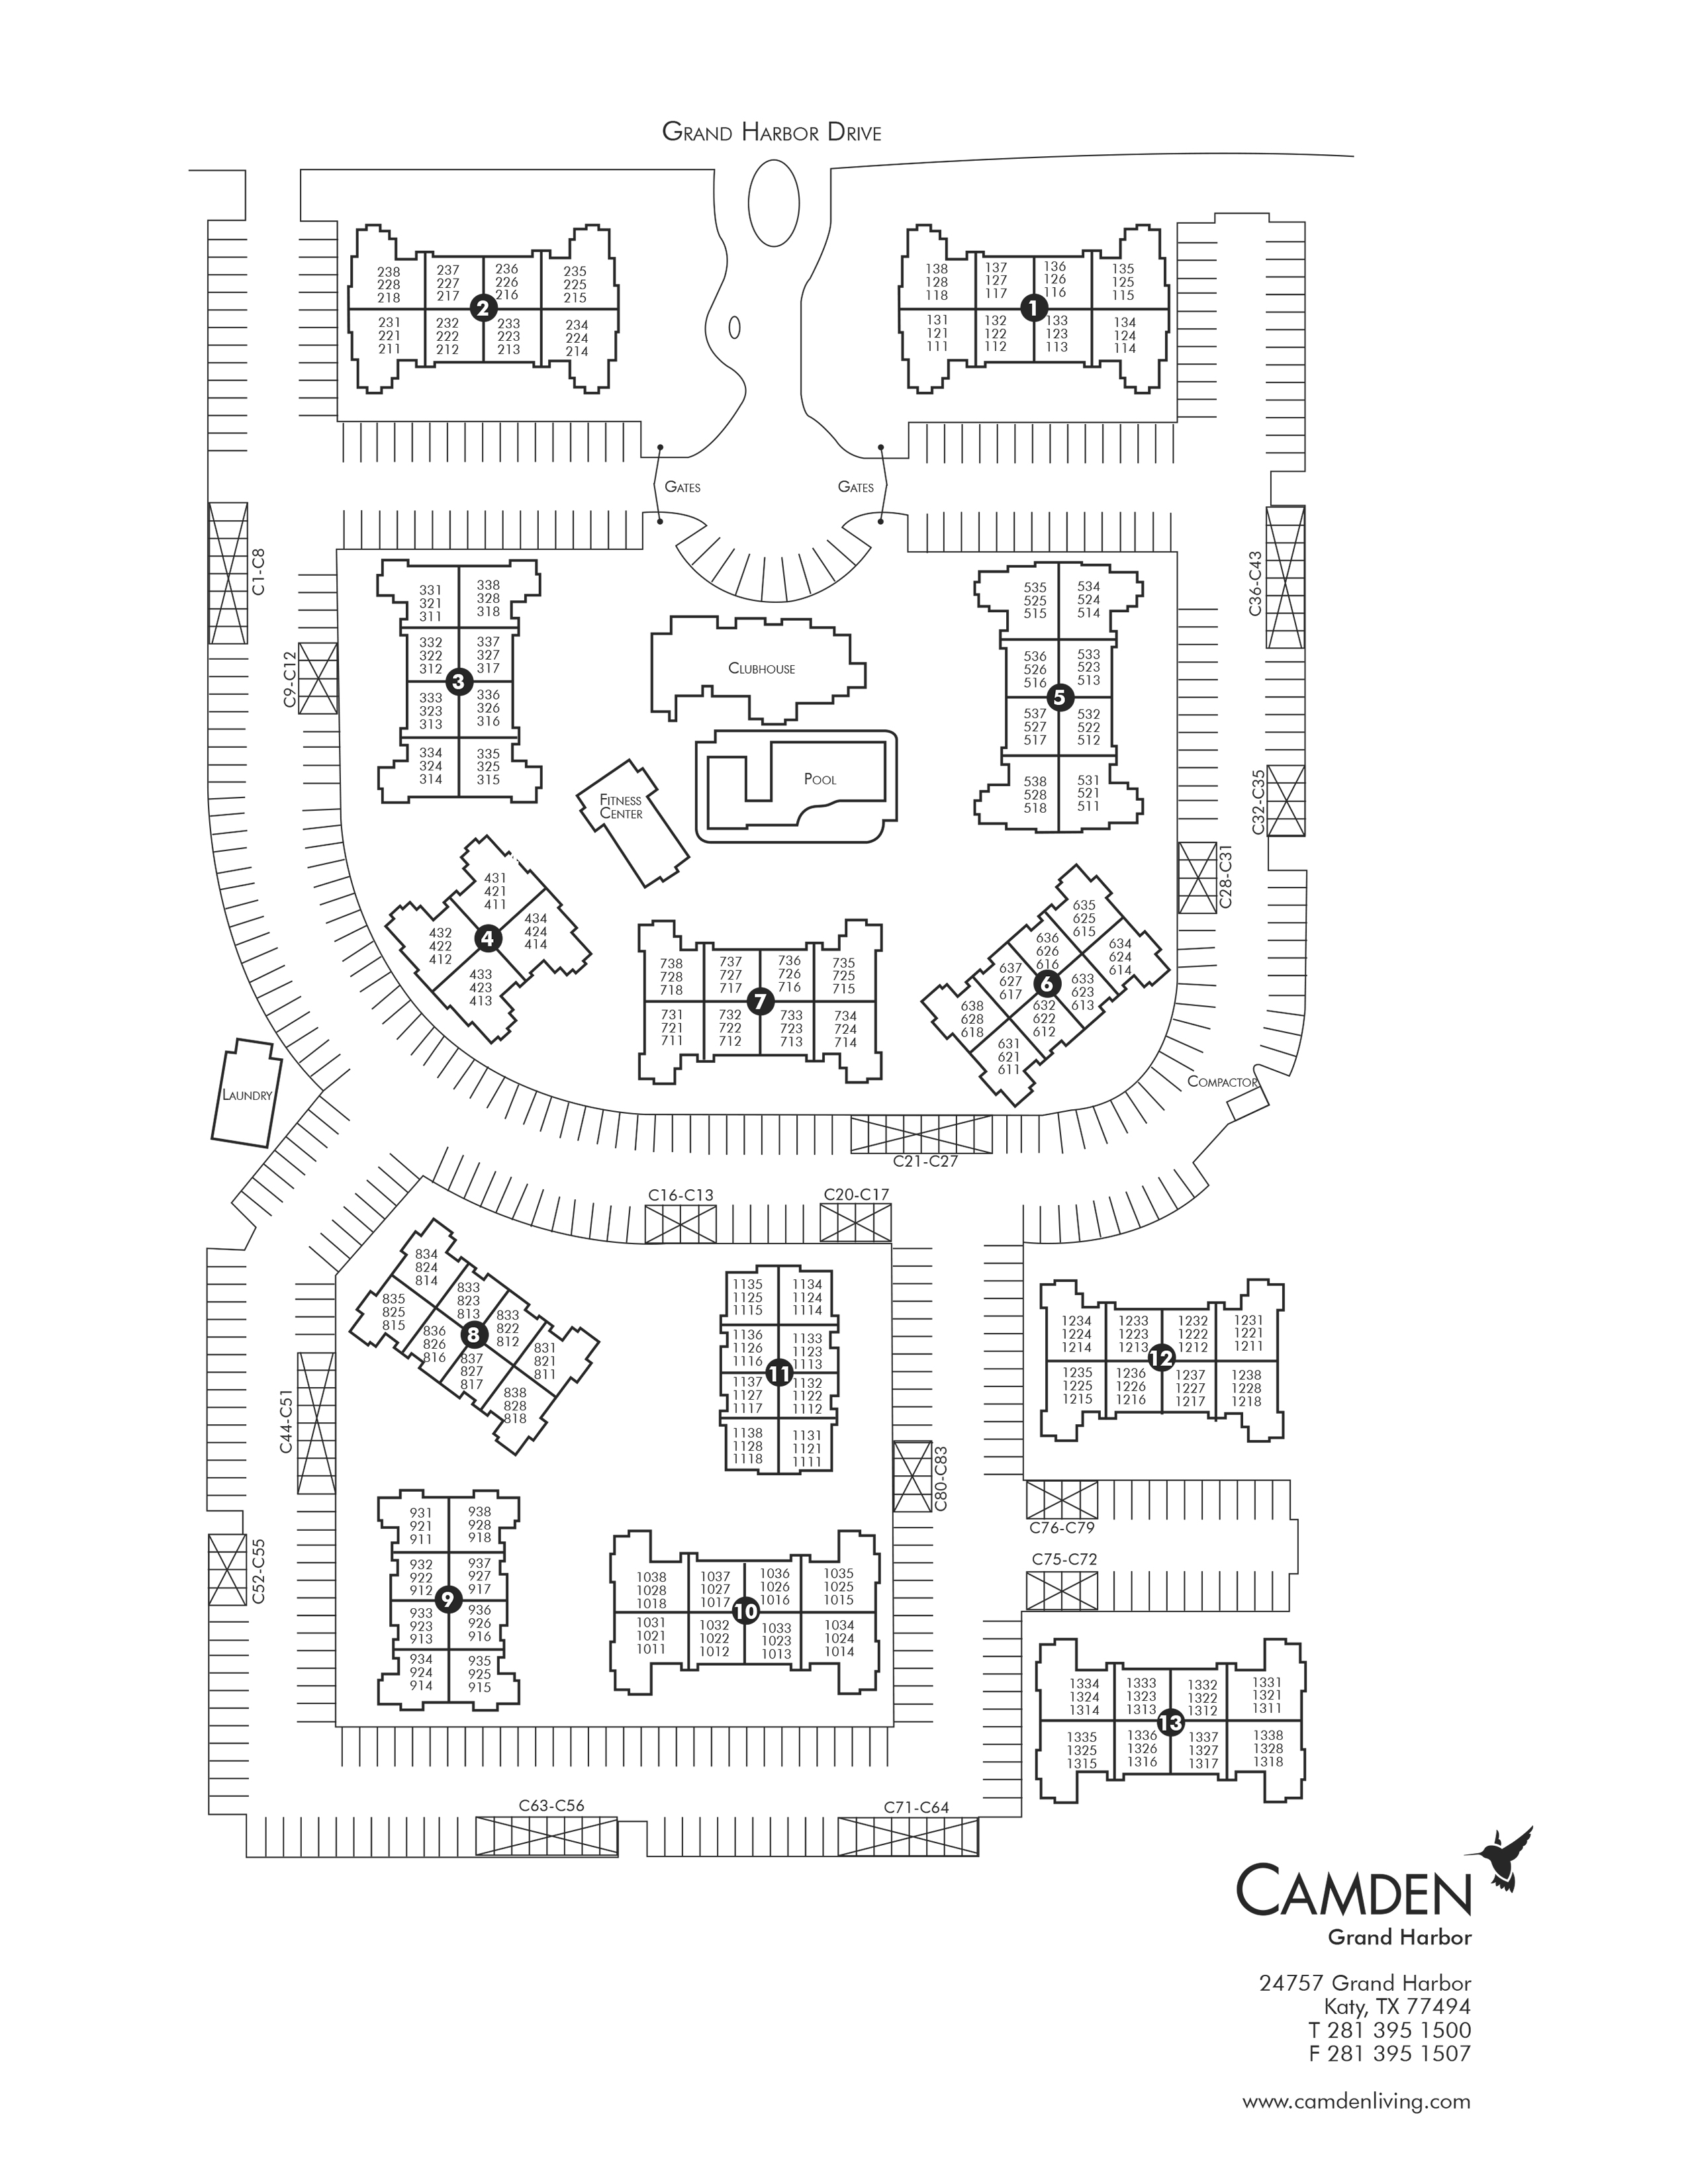 apartments for rent in katy tx camden grand harbor 2 Story Pole Building Framing virtual tour site plan